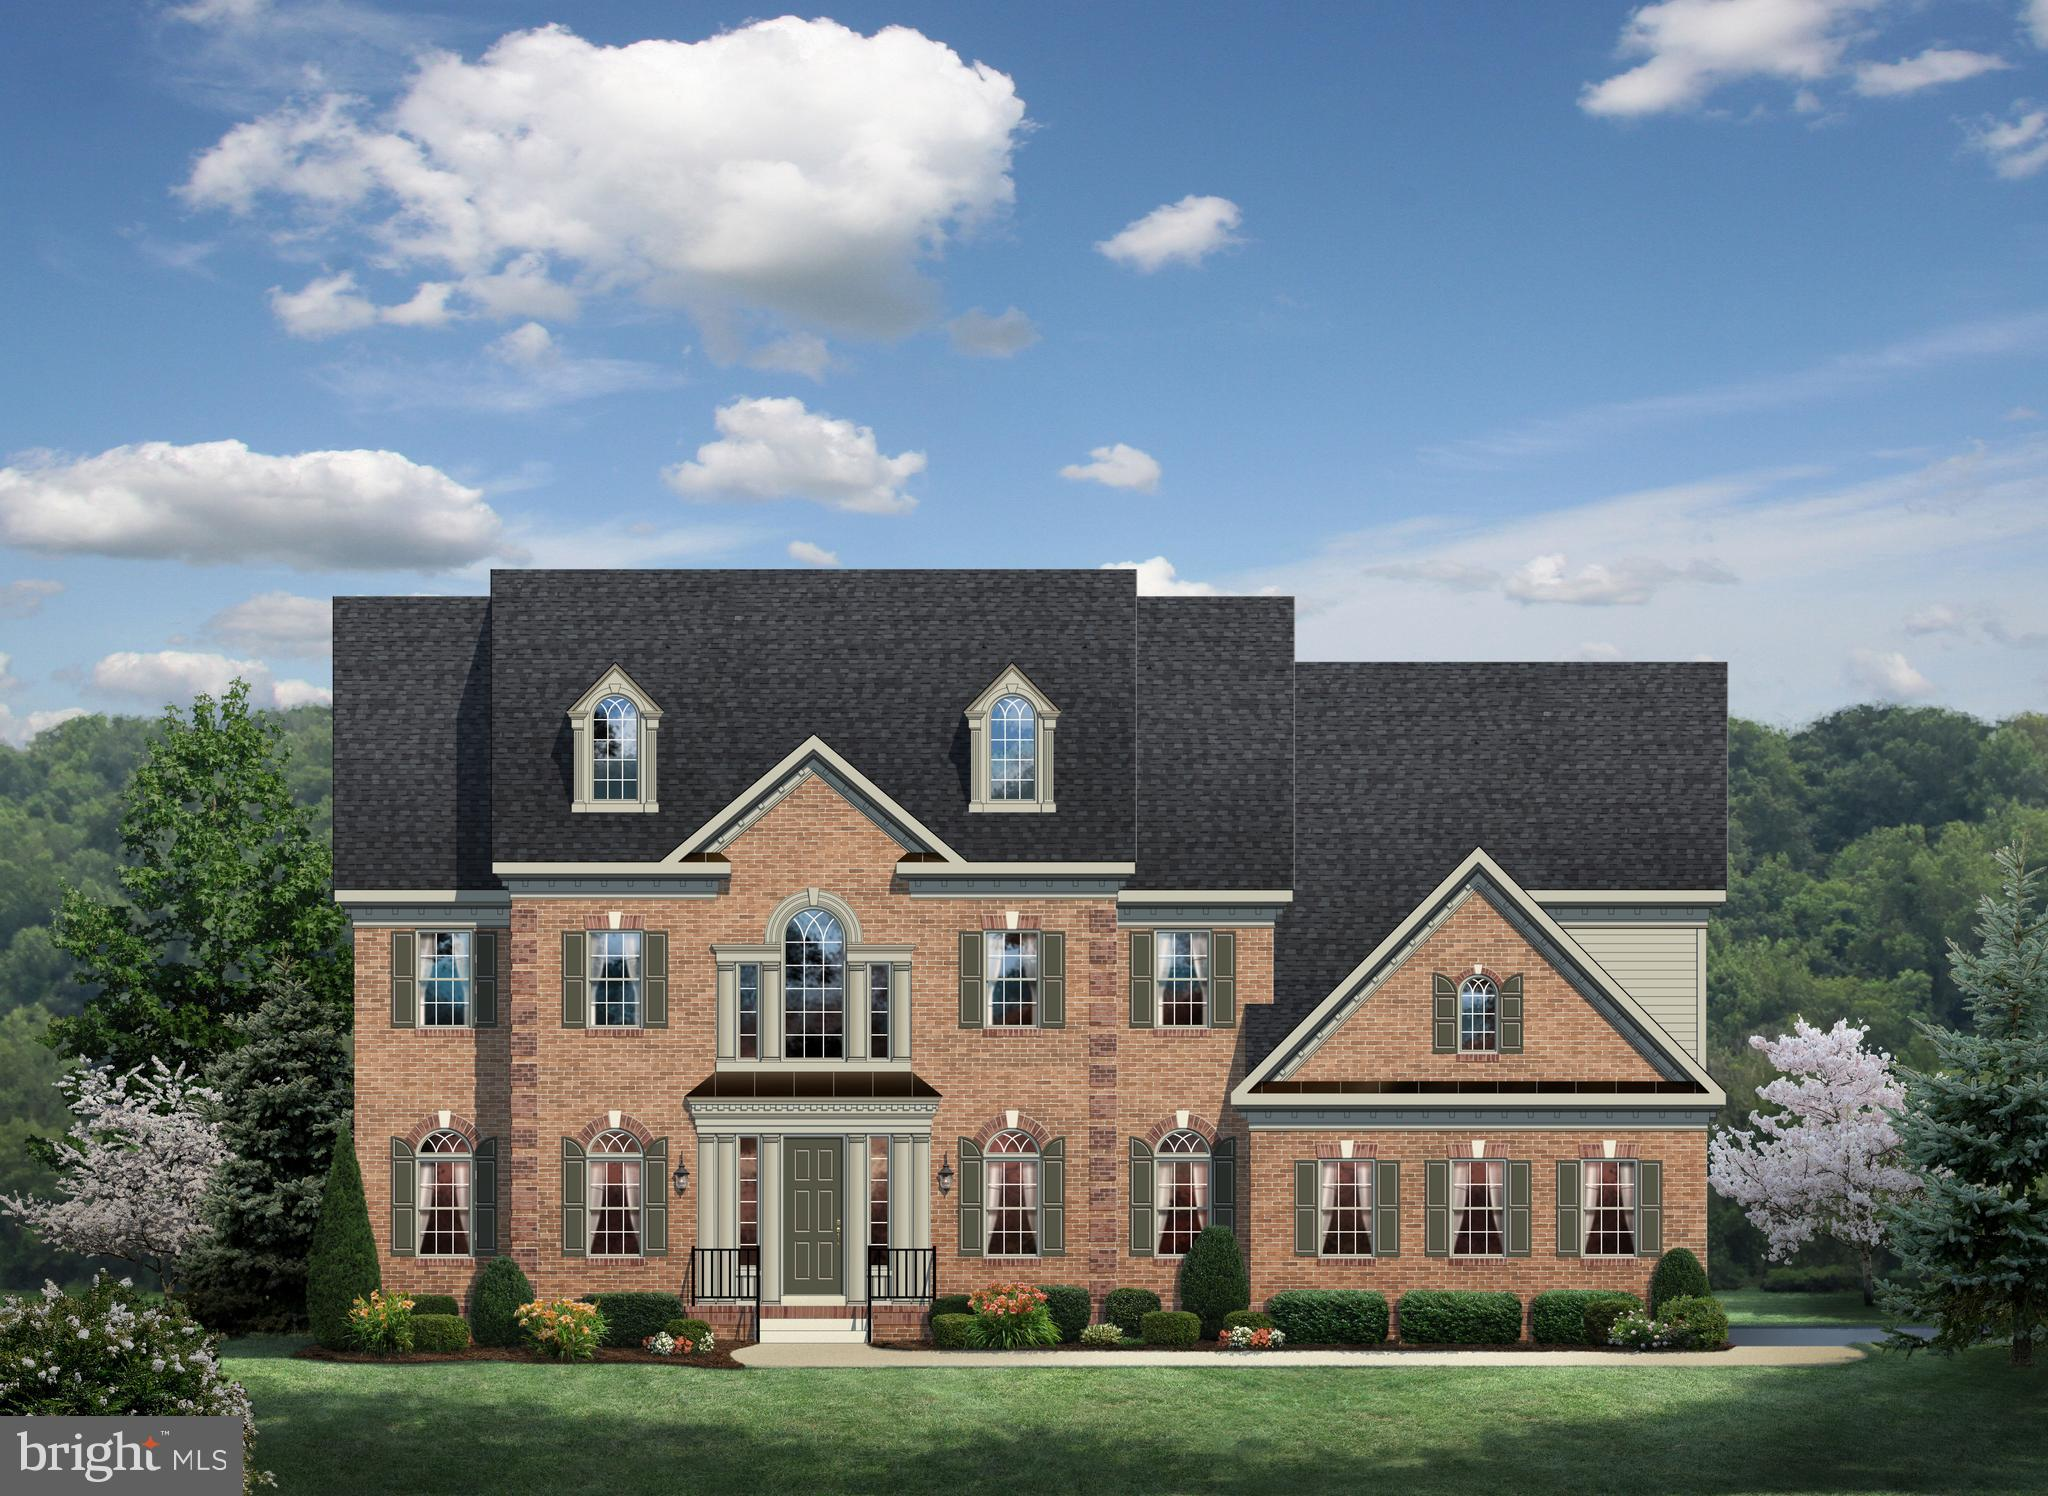 4000 GERSHWIN DRIVE, WEST CHESTER, PA 19380